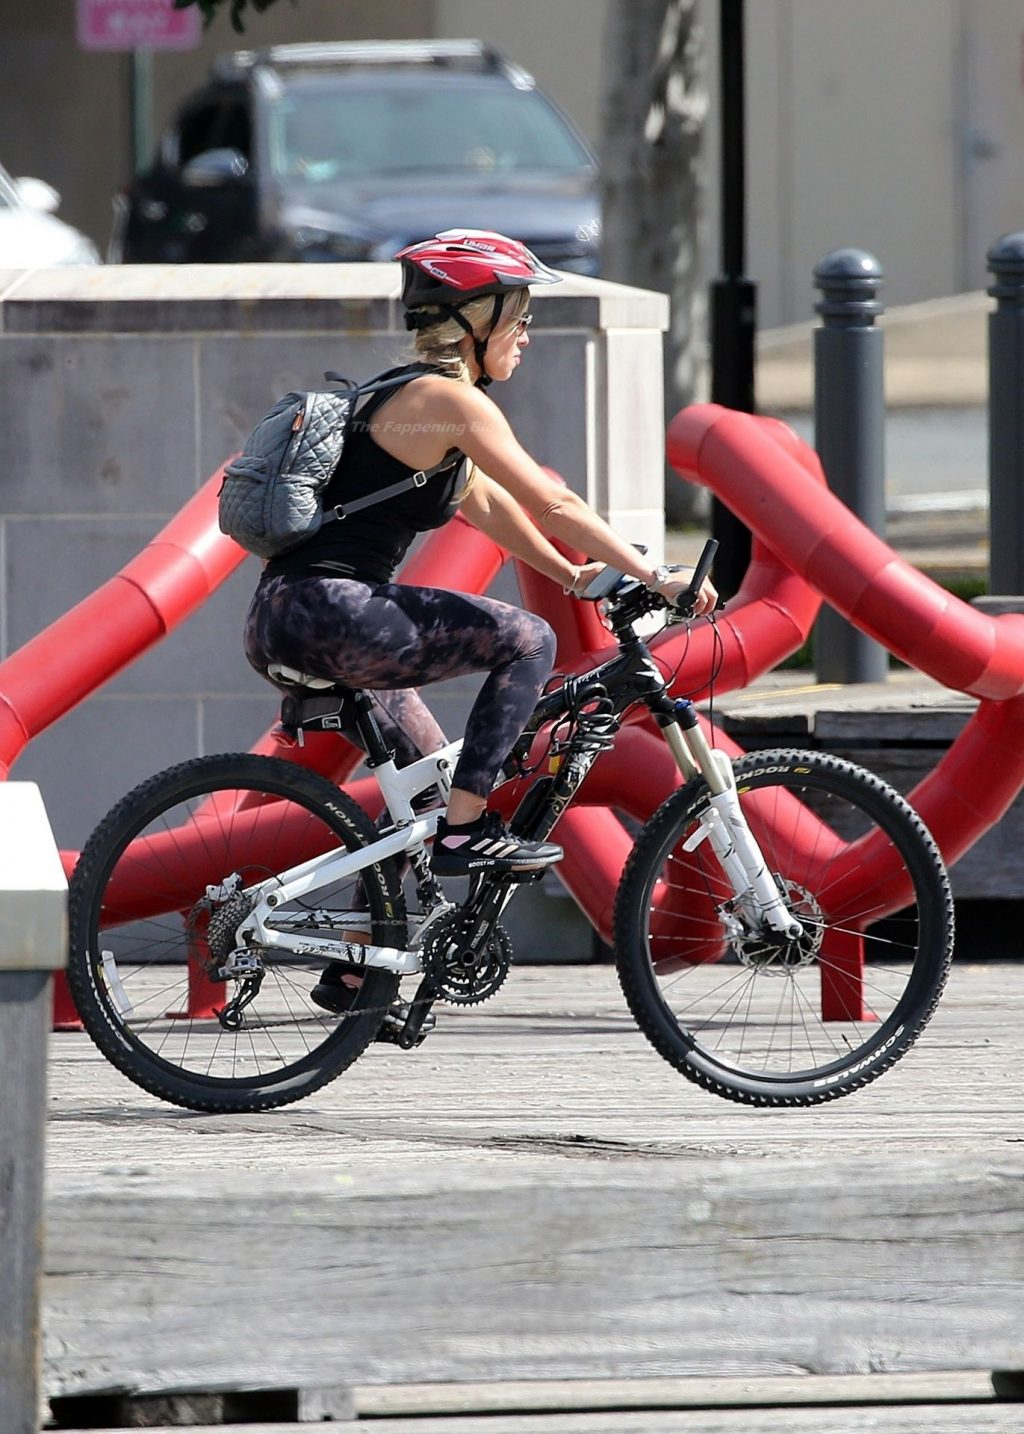 Russell Crowe is Joined on a Bike Ride by Britney Theriot and Rita Ora (27 Photos)